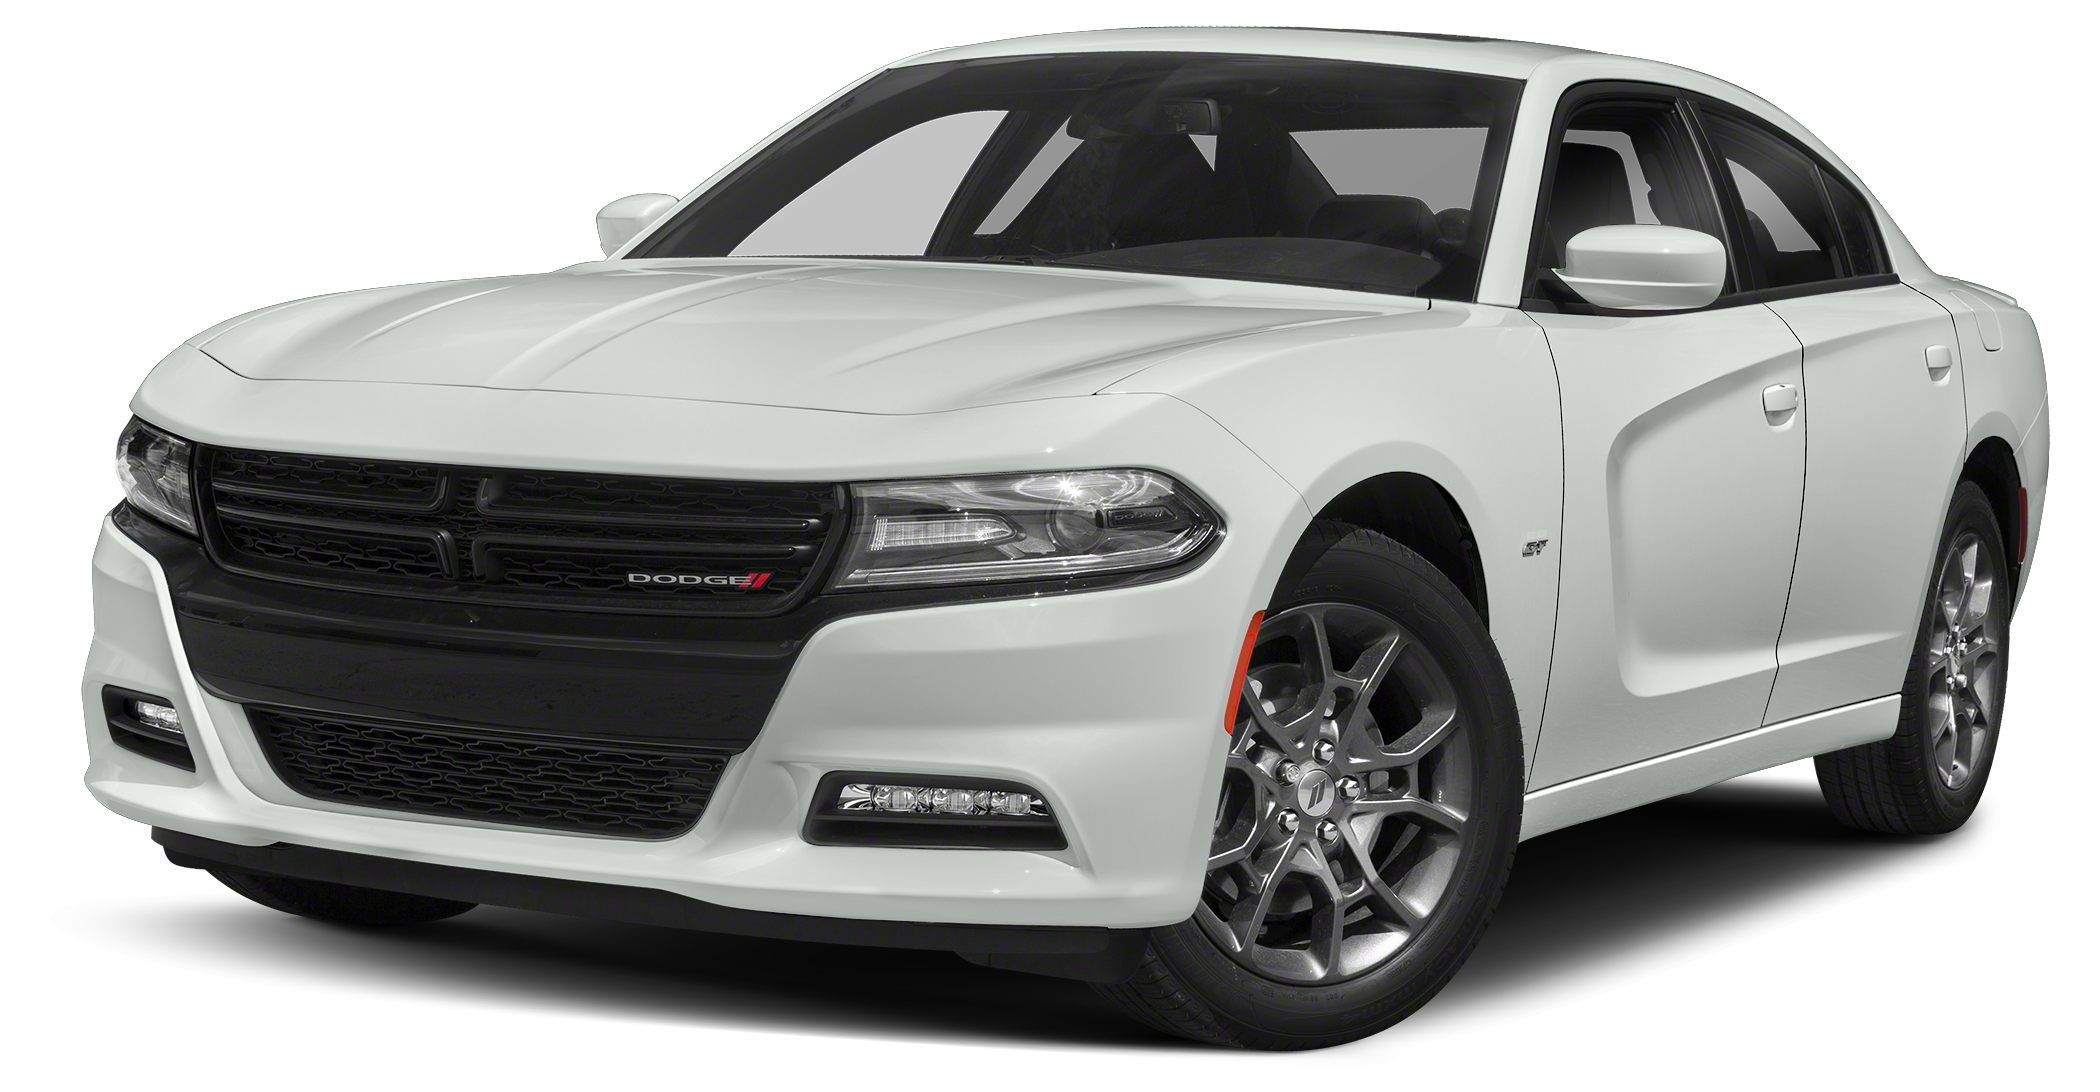 2018 Dodge Charger GT SPECIAL ONLINE PRICE INCLUDES 2250 IN REBATES THAT ALL CUSTOMERS QUALIFY F